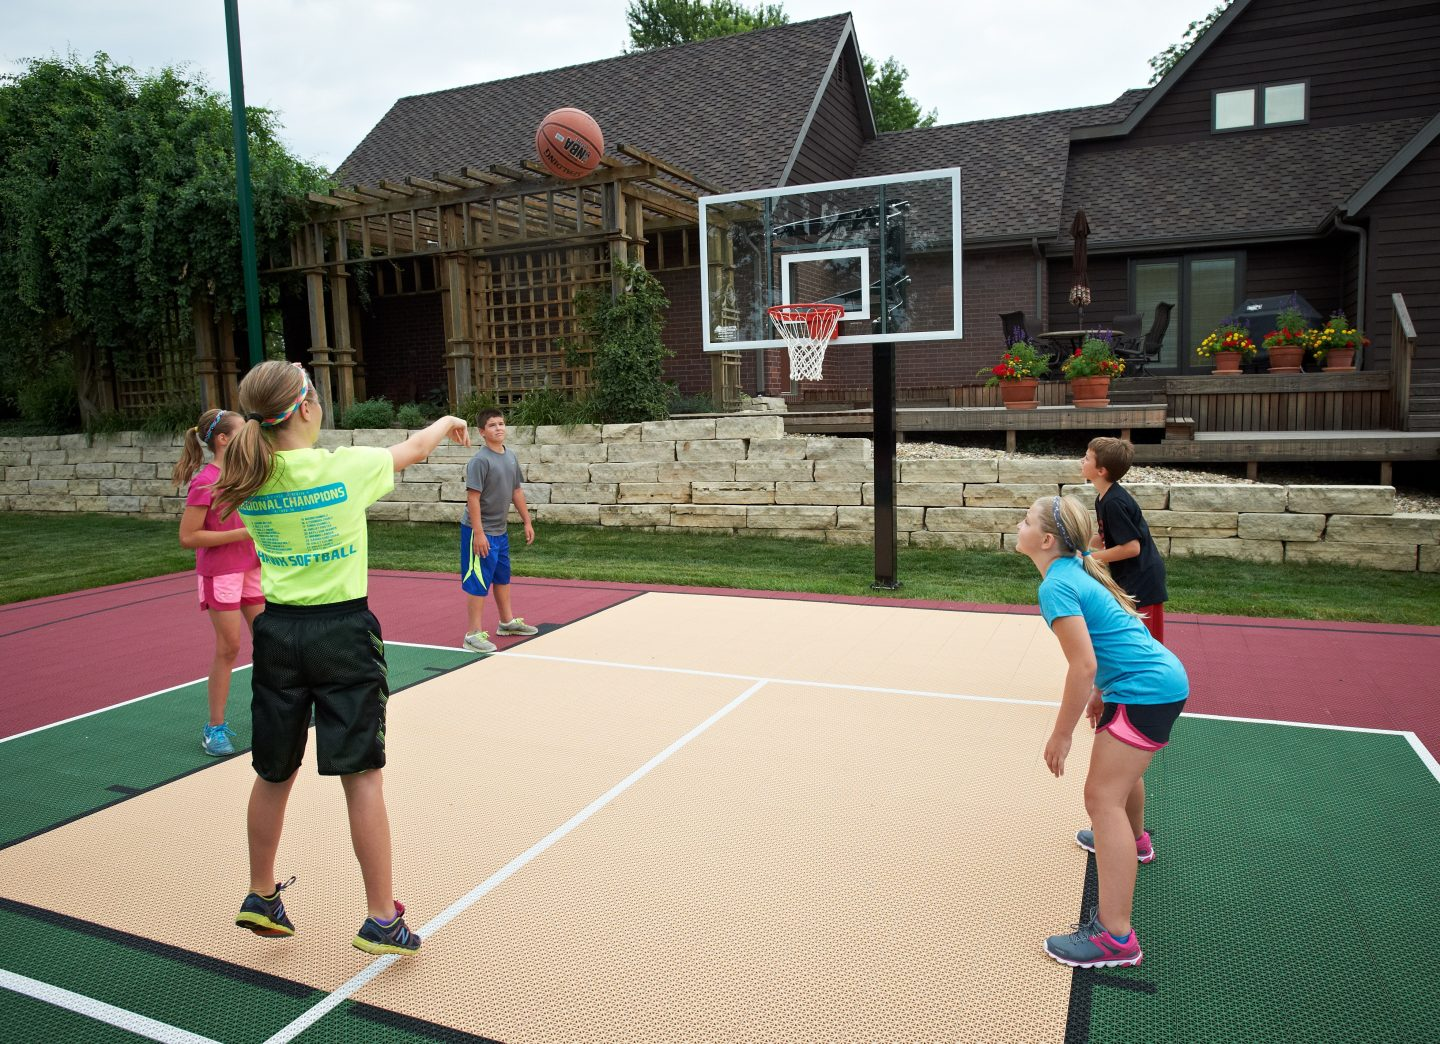 https://www.bestinbackyards.com/wp-content/uploads/2018/05/Kids-Playing-Basketball-Outside-with-Goalsetter-Hoop-1440x1044.jpg